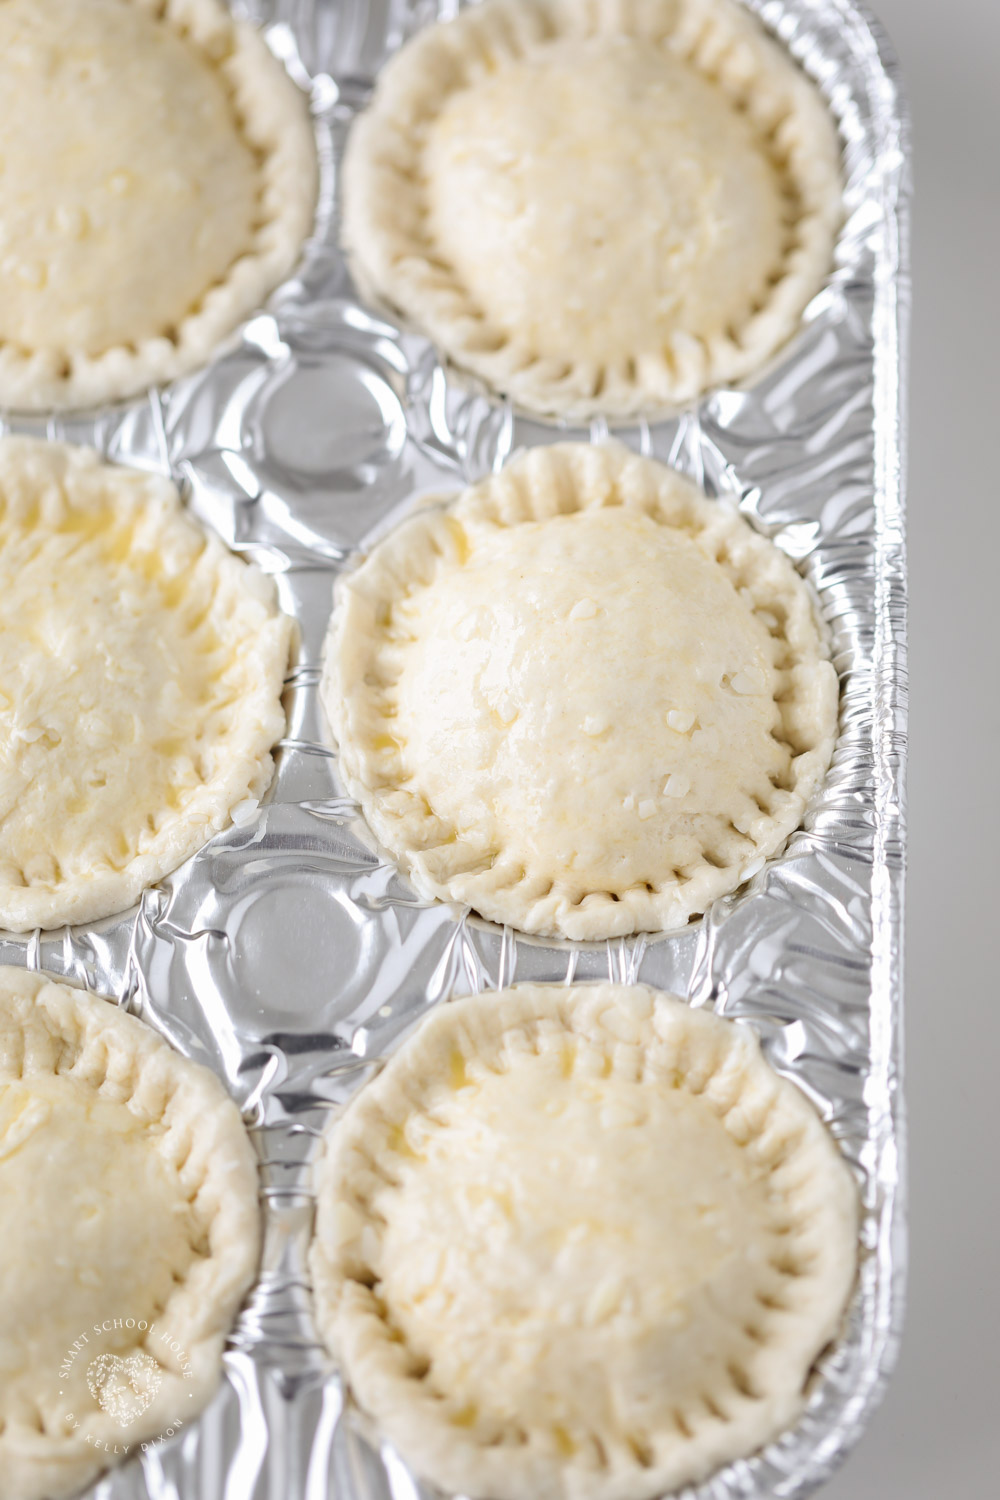 How to make pot pies with biscuits in a muffin tin